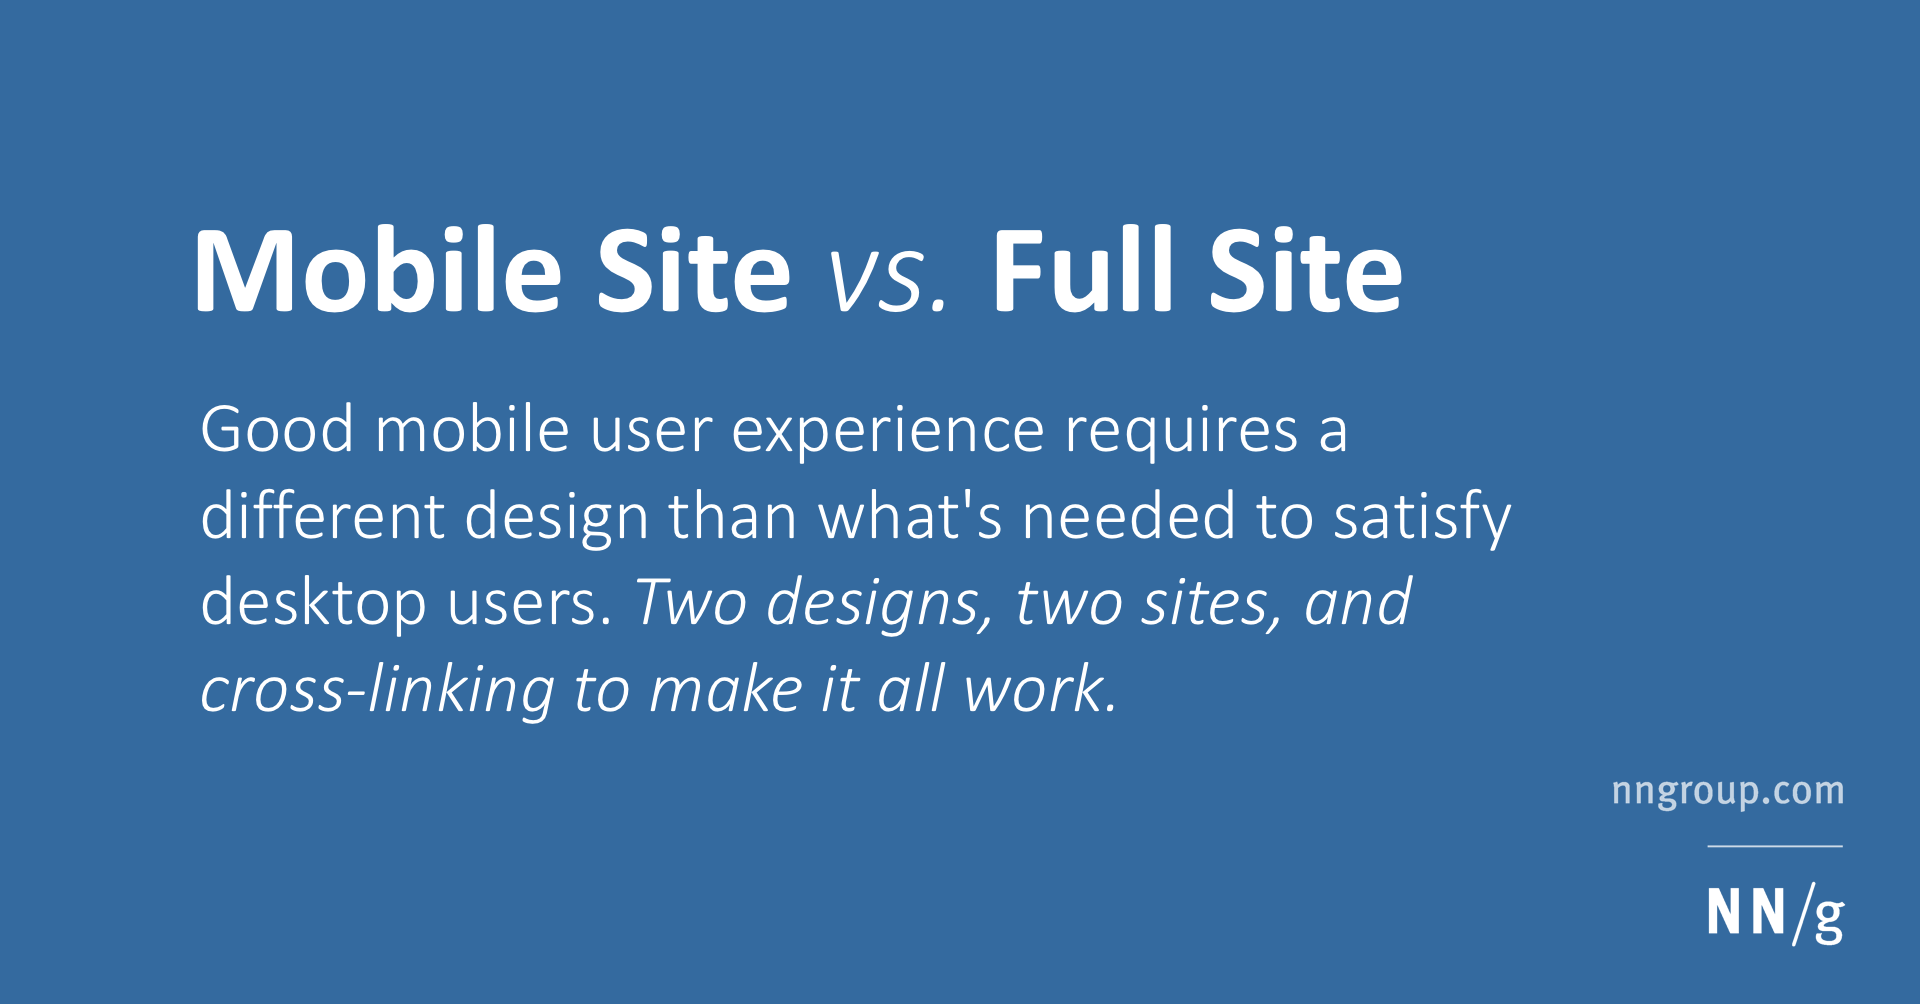 Mobile Site vs. Full Site on mobile plant, mobile people, mobile user, flat rate, mobile browser, mobile history, mobile reader, mobile food, mobile internet growth, mobile project, mobile calendar, mobile computer, mobile internet devices, mobile email, mobile bank,